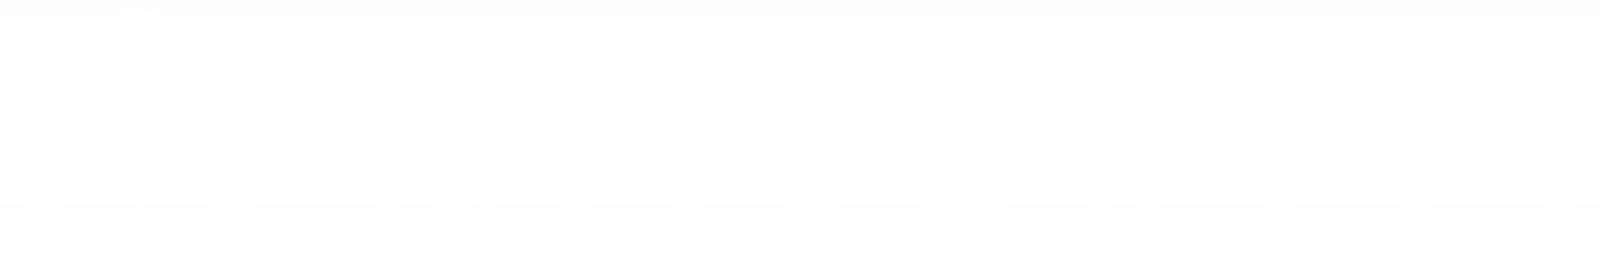 Novartis Logo white with clear background